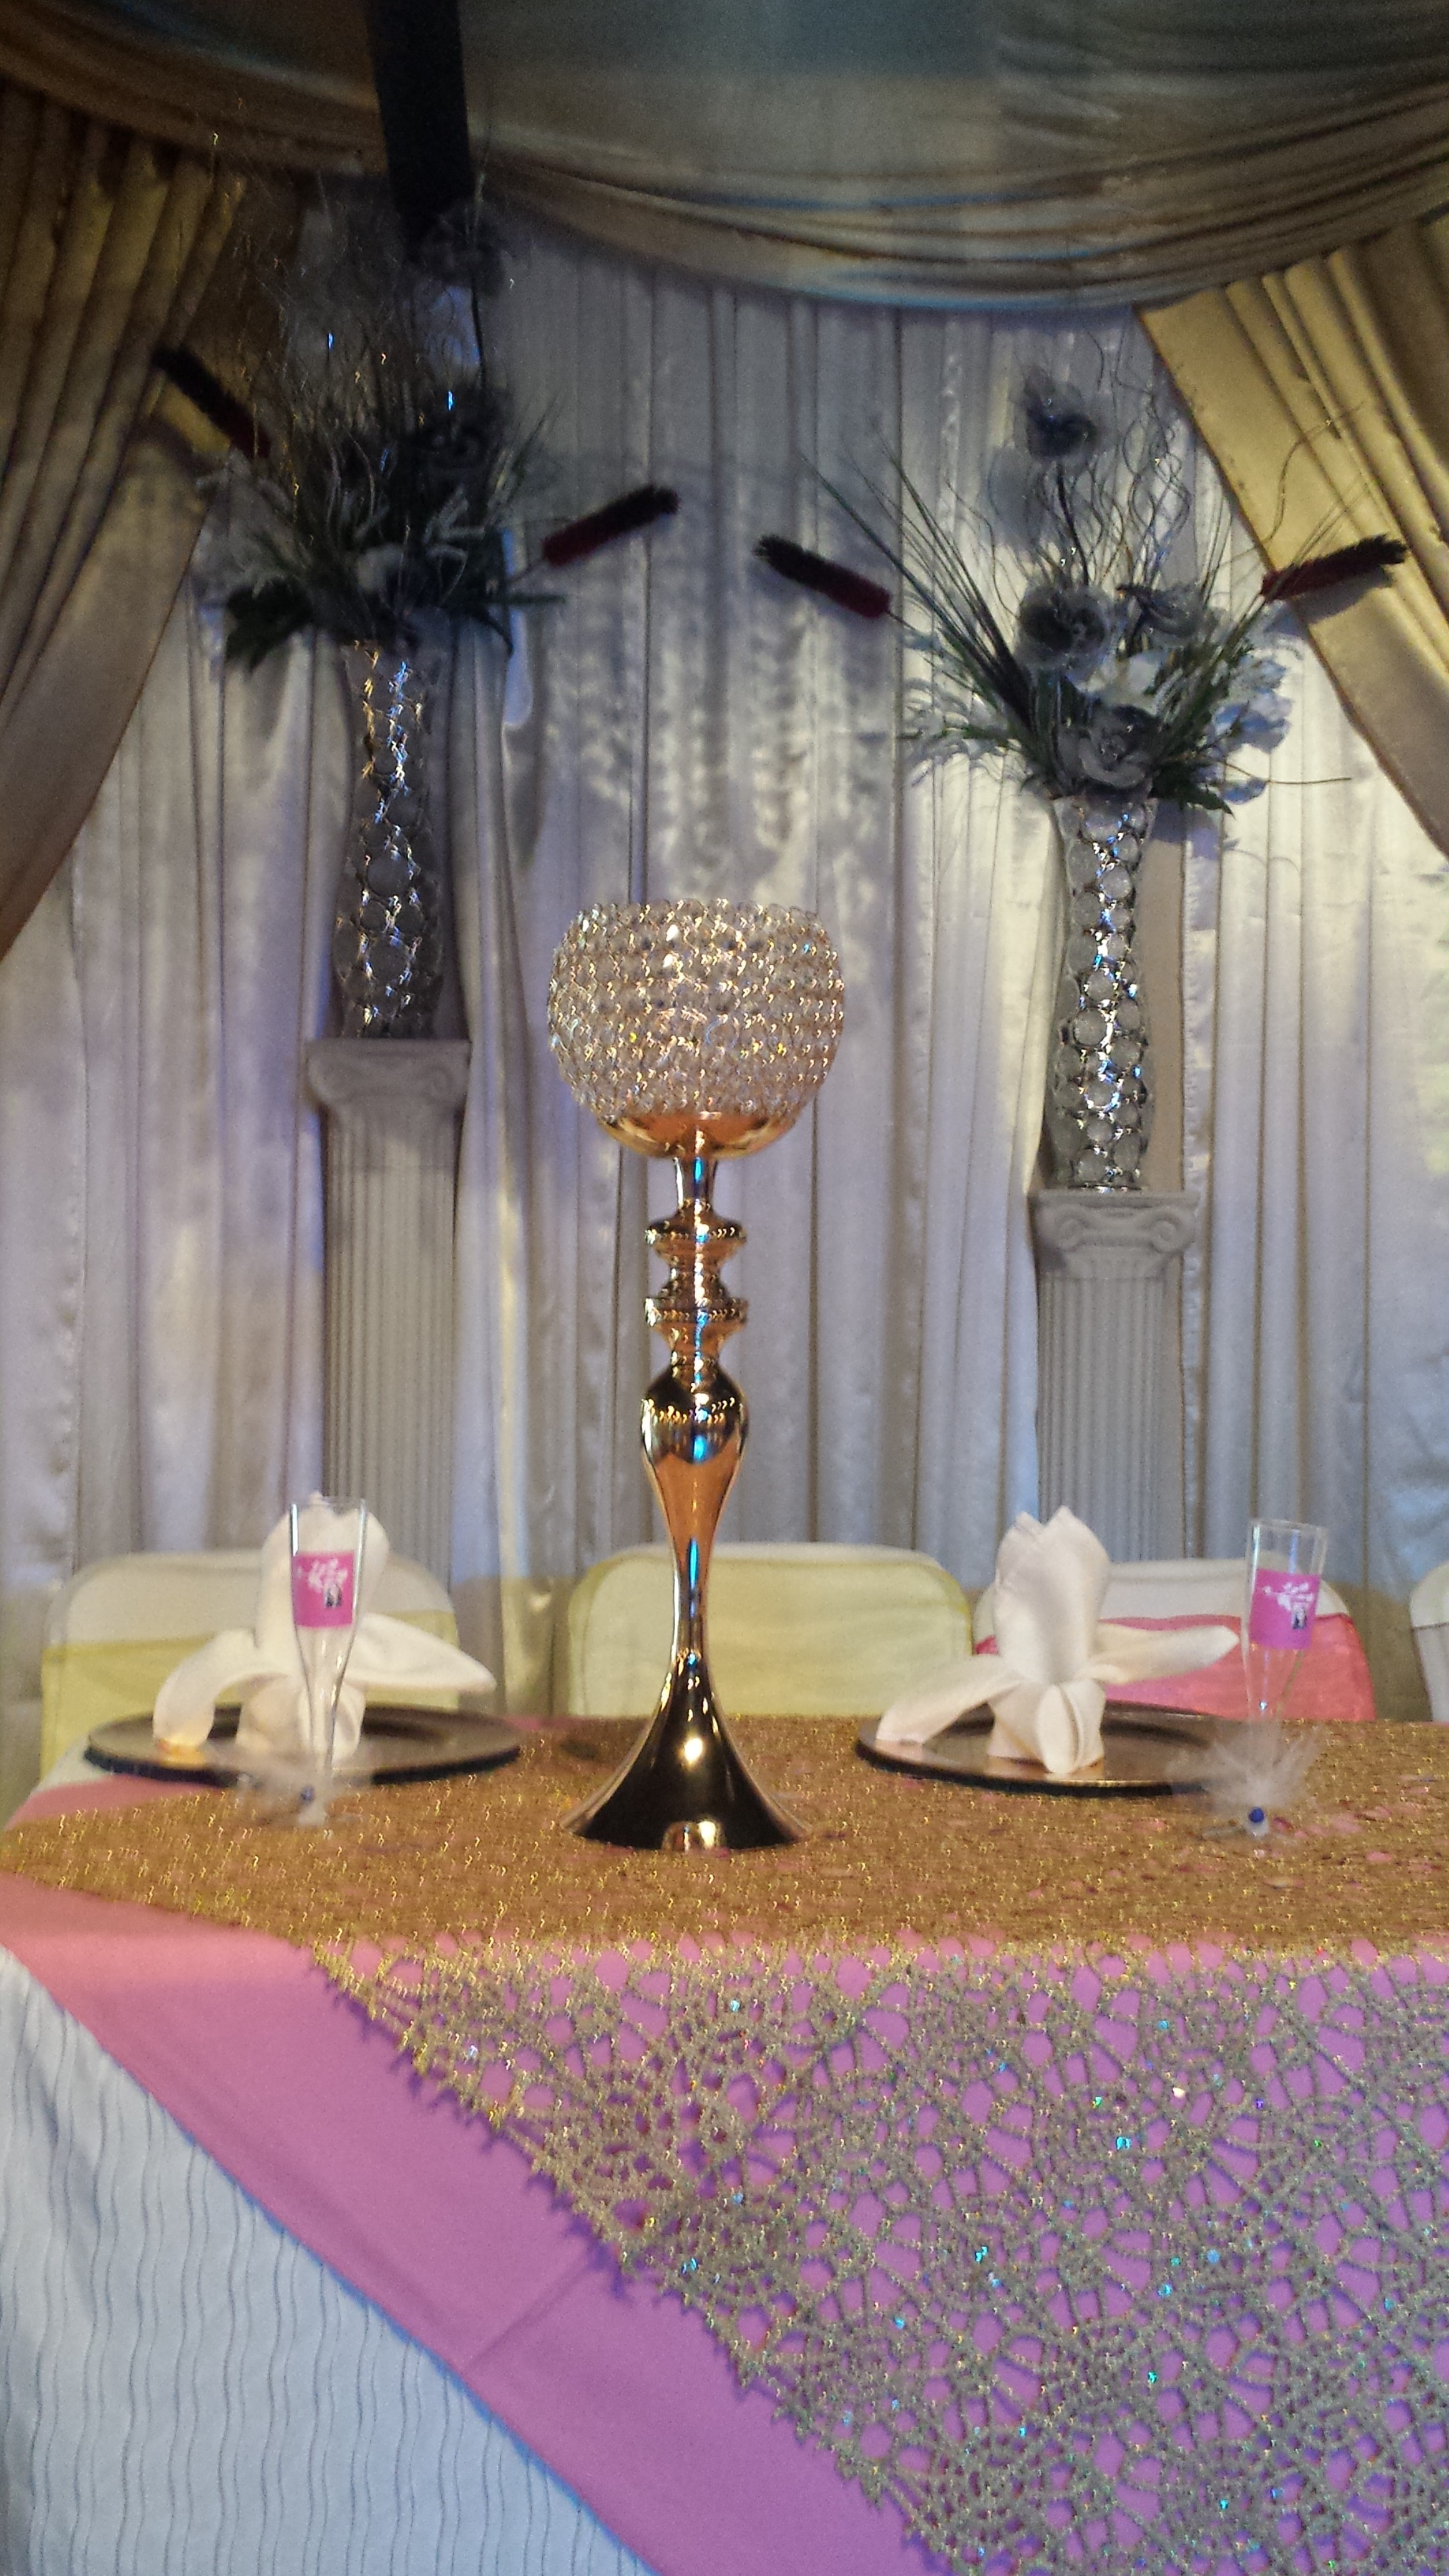 Special head table